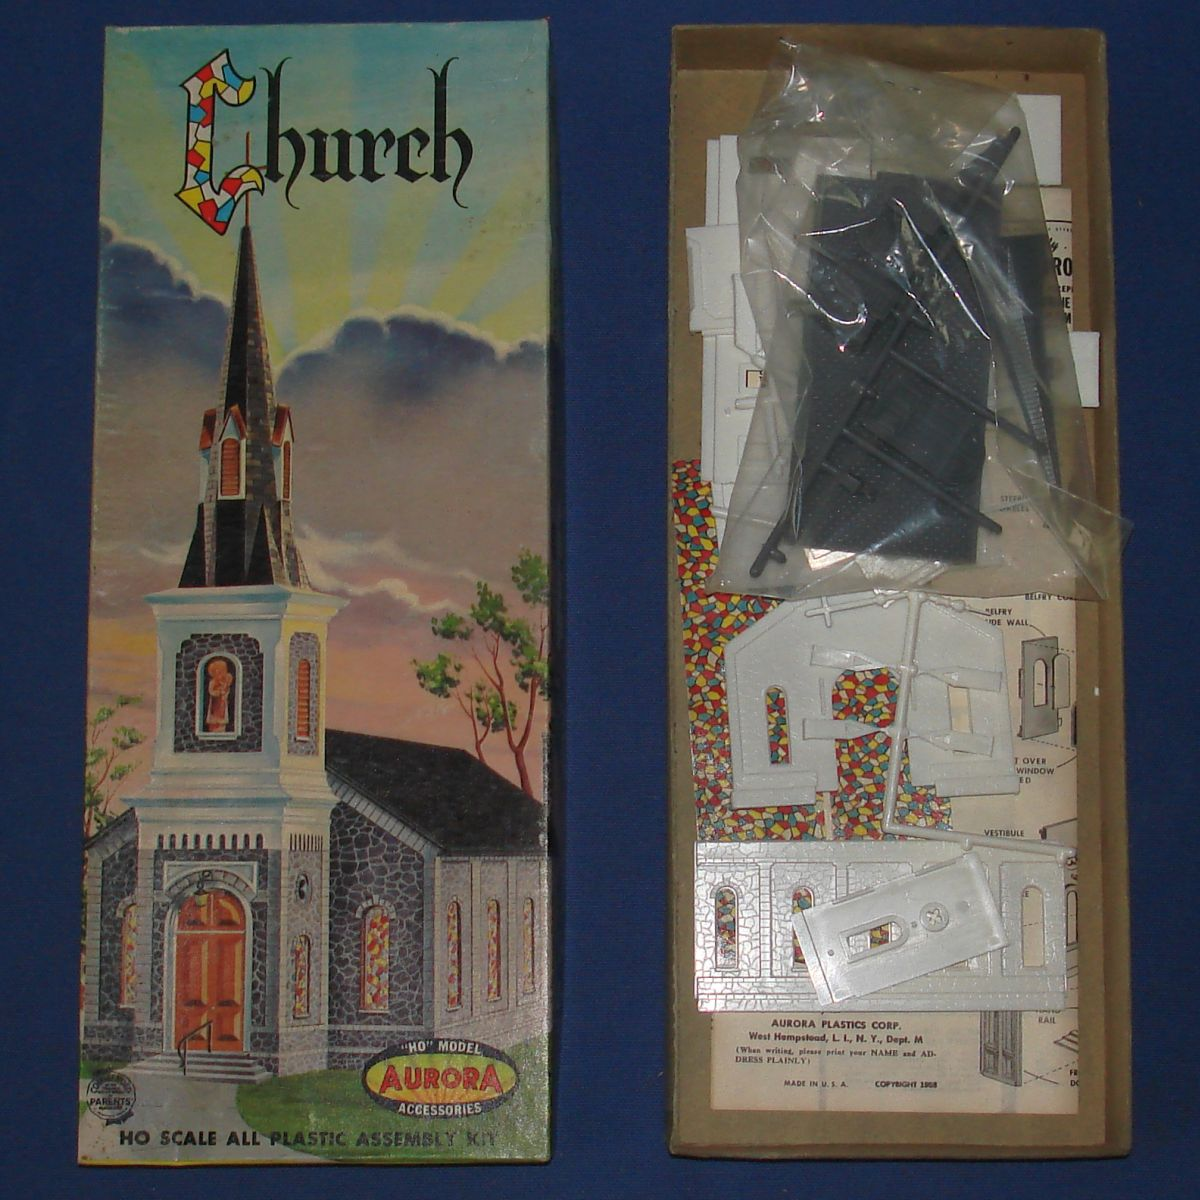 AURORA HO SCALE SLOT CAR TRAIN LAYOUT SCENERY CHURCH MODEL HOBBY KIT #655